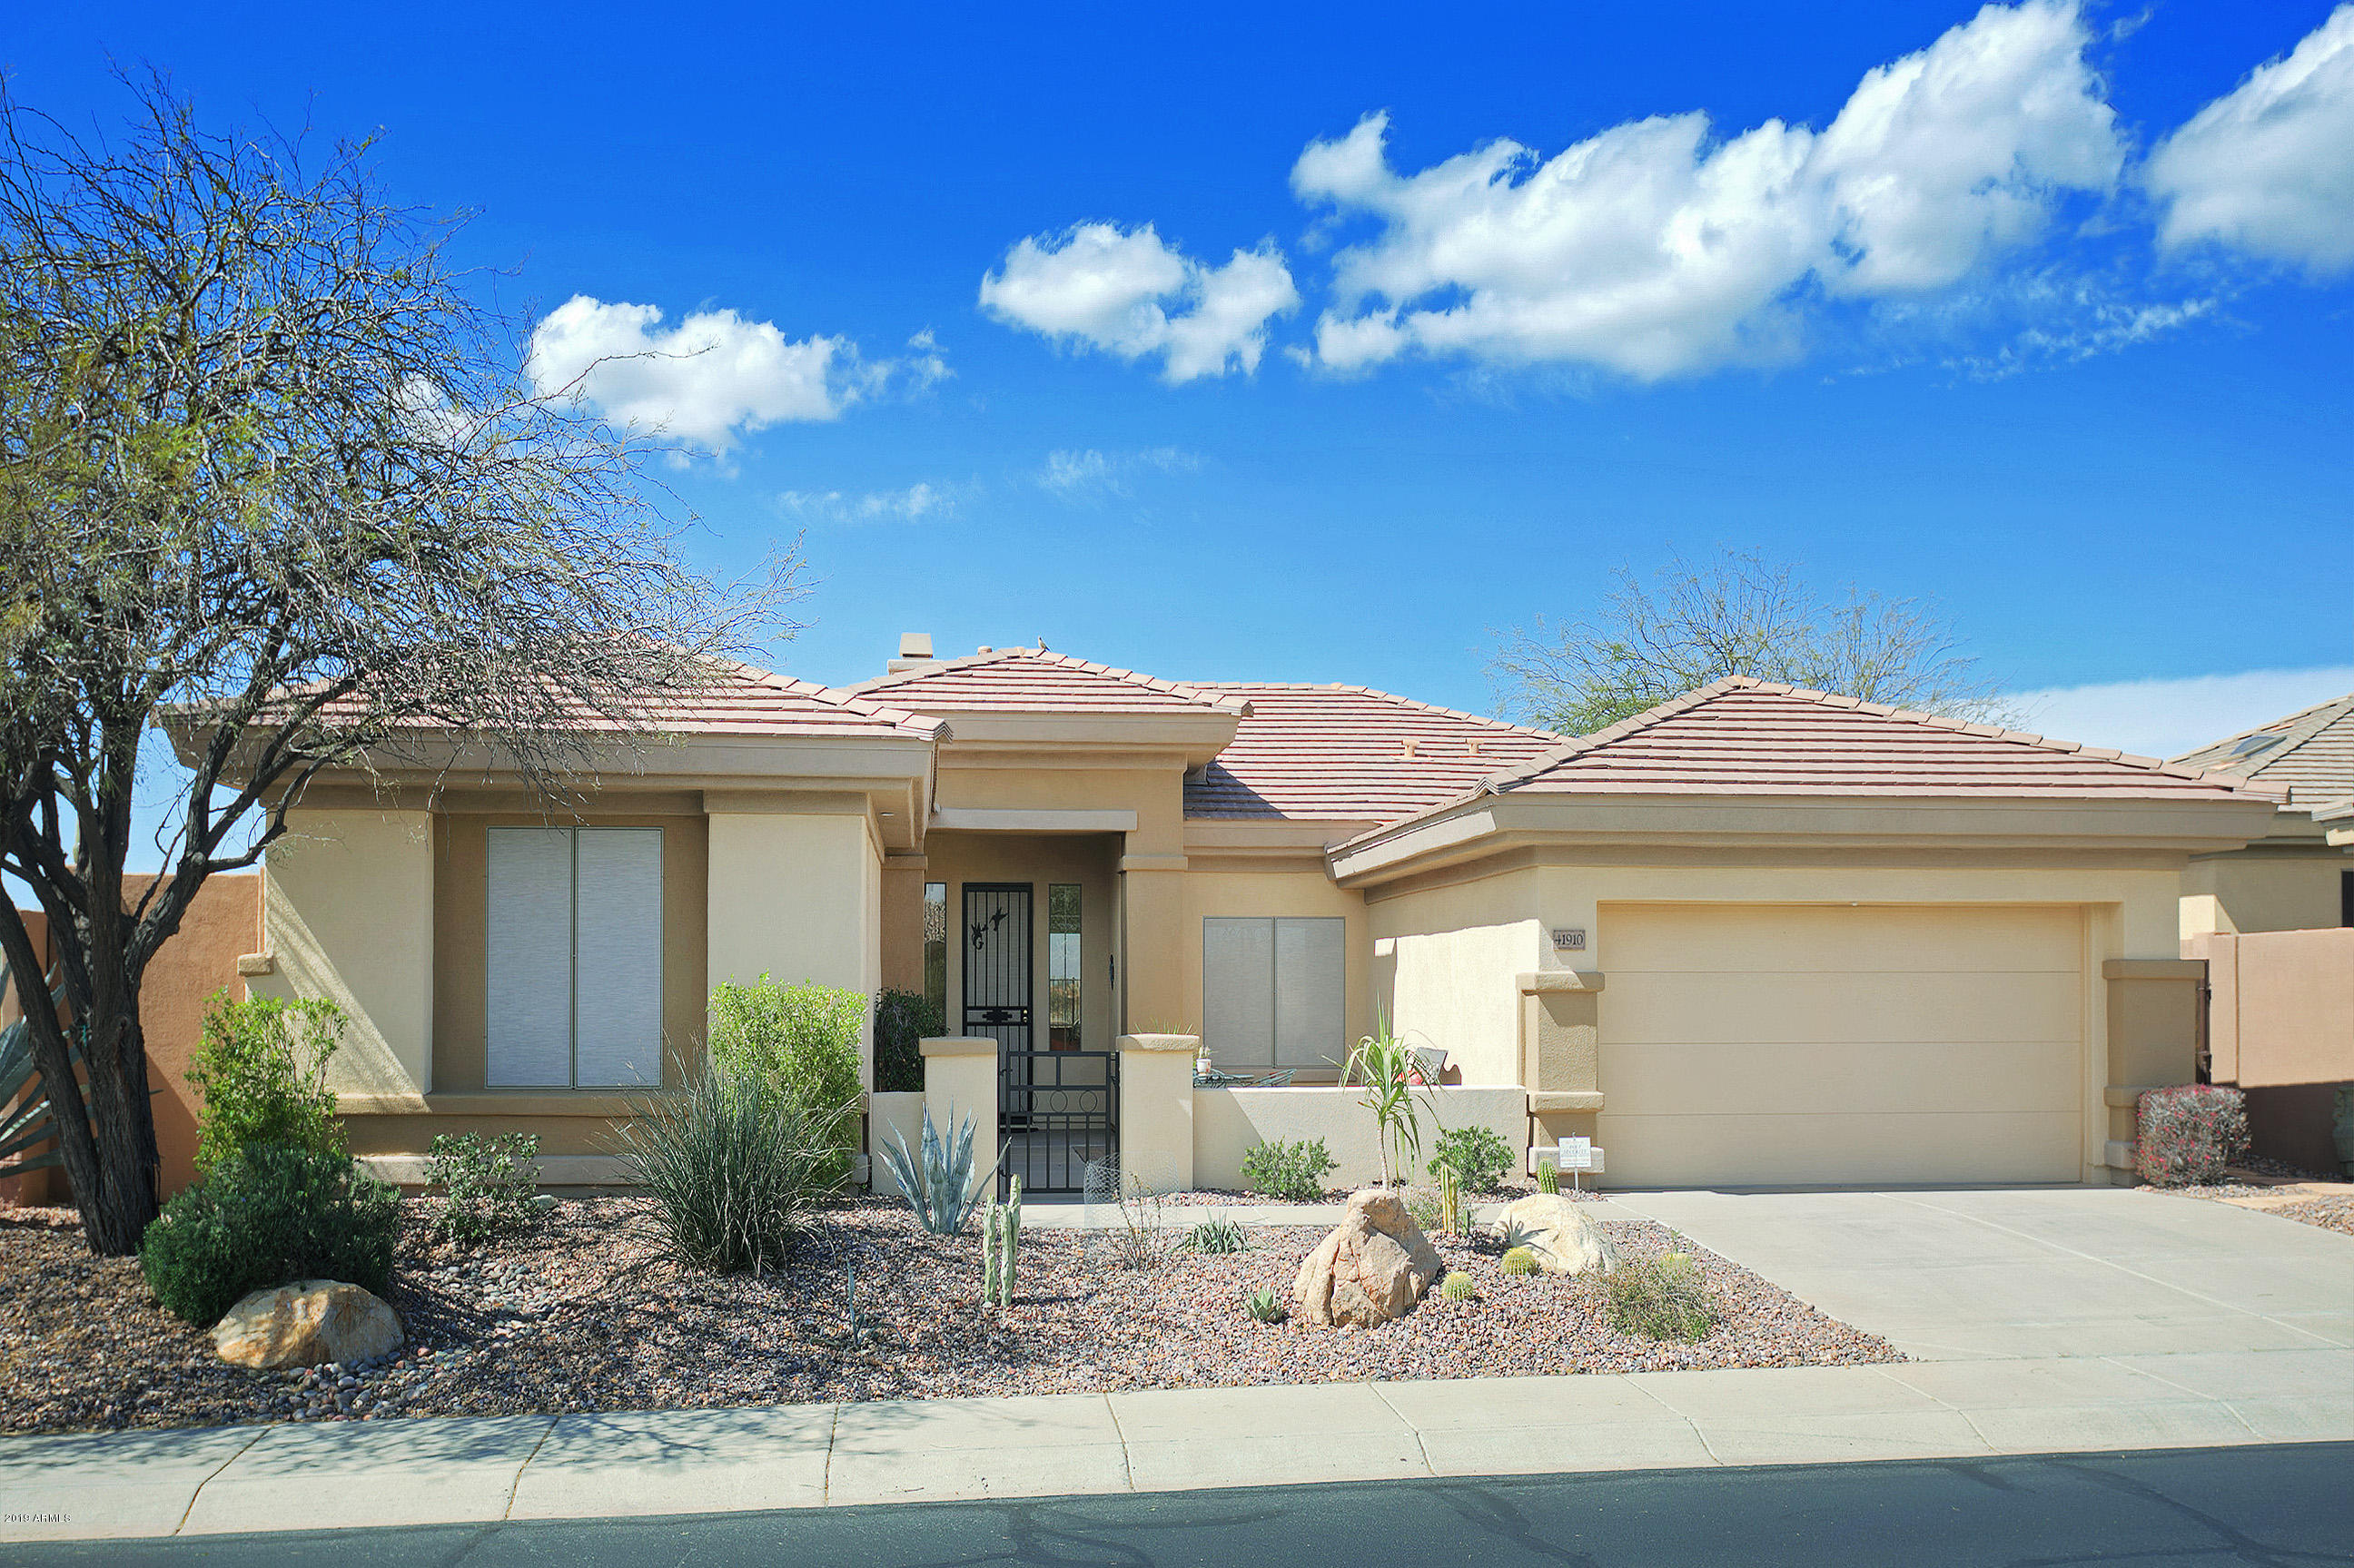 41910 N ANTHEM SPRINGS Road, Anthem in Maricopa County, AZ 85086 Home for Sale